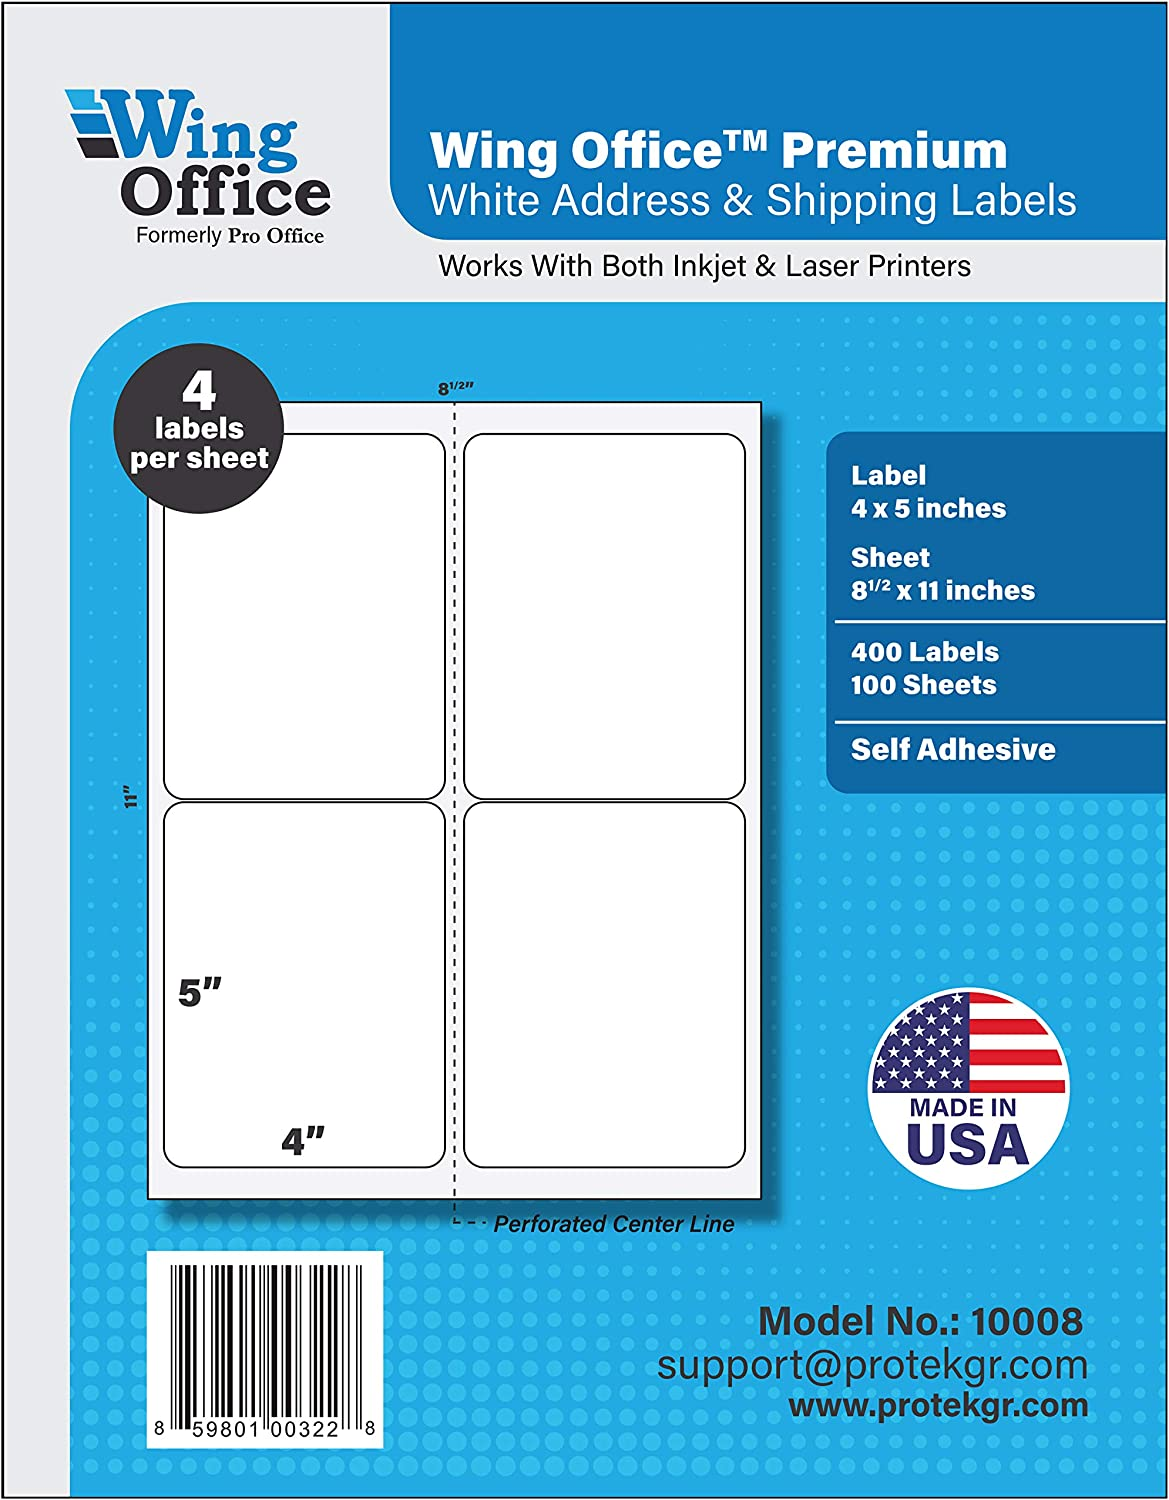 Pro Office Premium 400 Self Adhesive Shipping Labels for Laser Printers and Ink Jet Printers, White, Made in USA, 4 x 5 Inches, Pack of 400